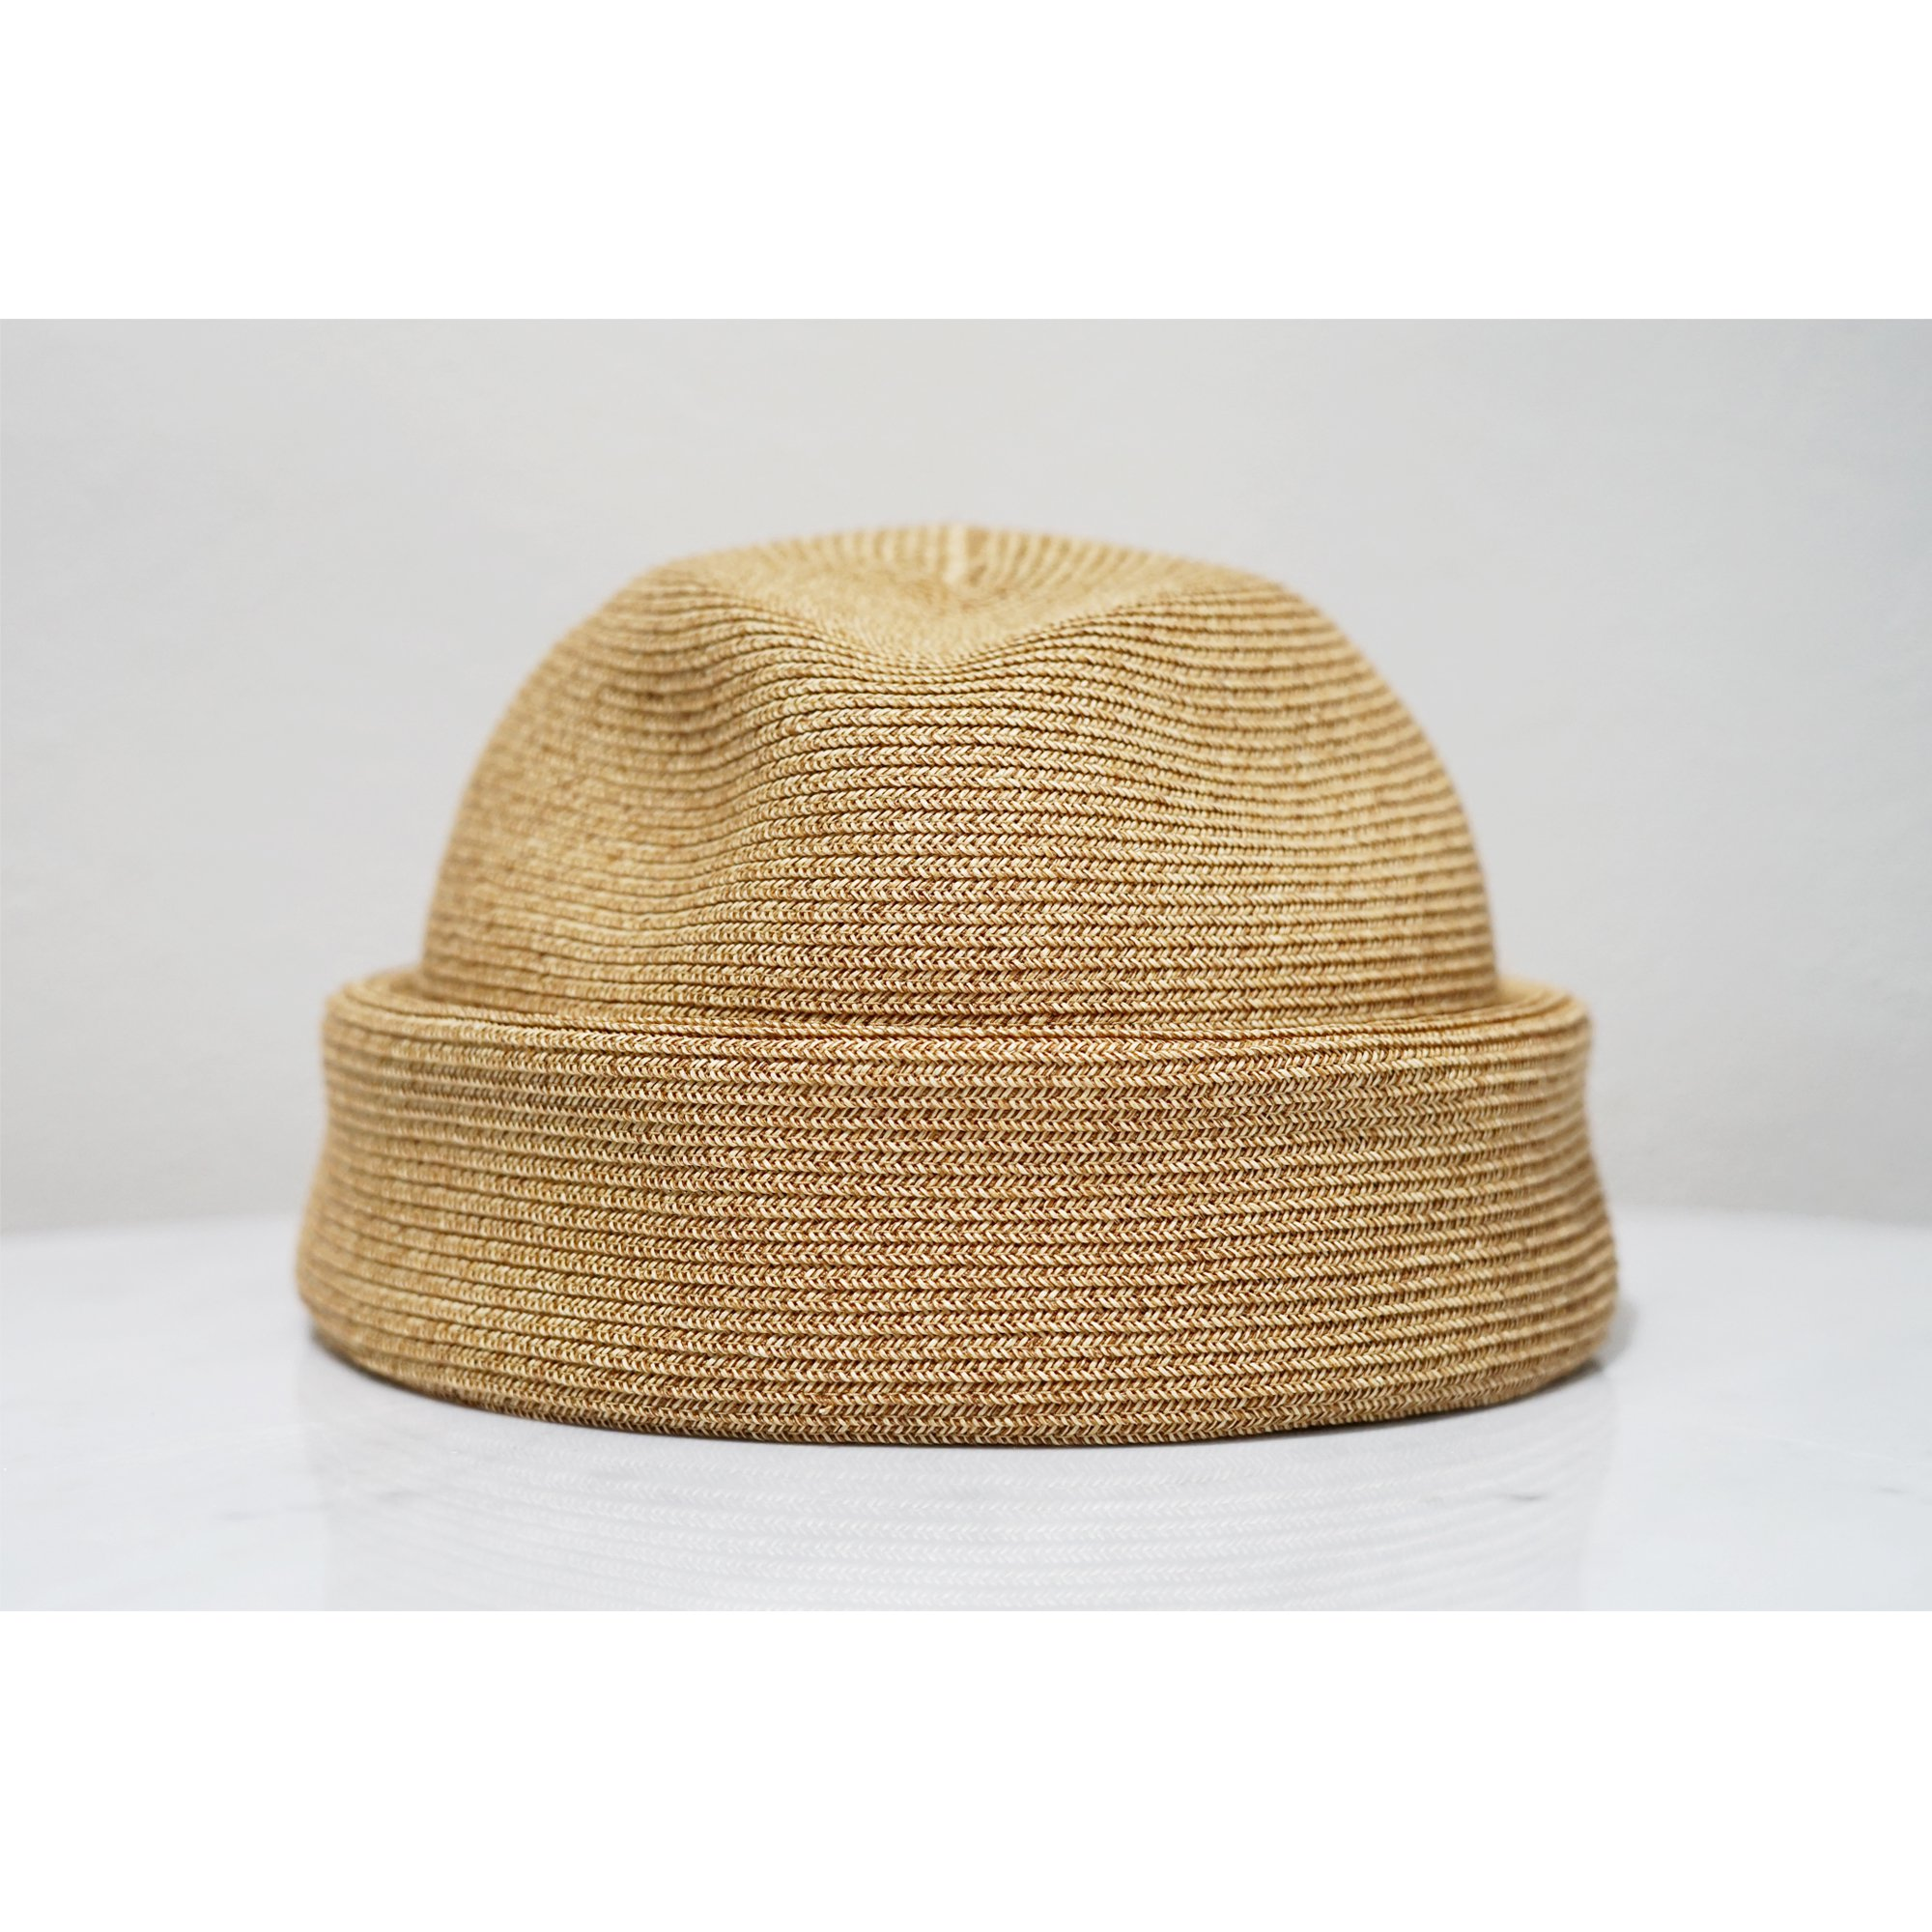 KIJIMA TAKAYUKI-STRAW HAT WITHOUT BRIM LT BROWN